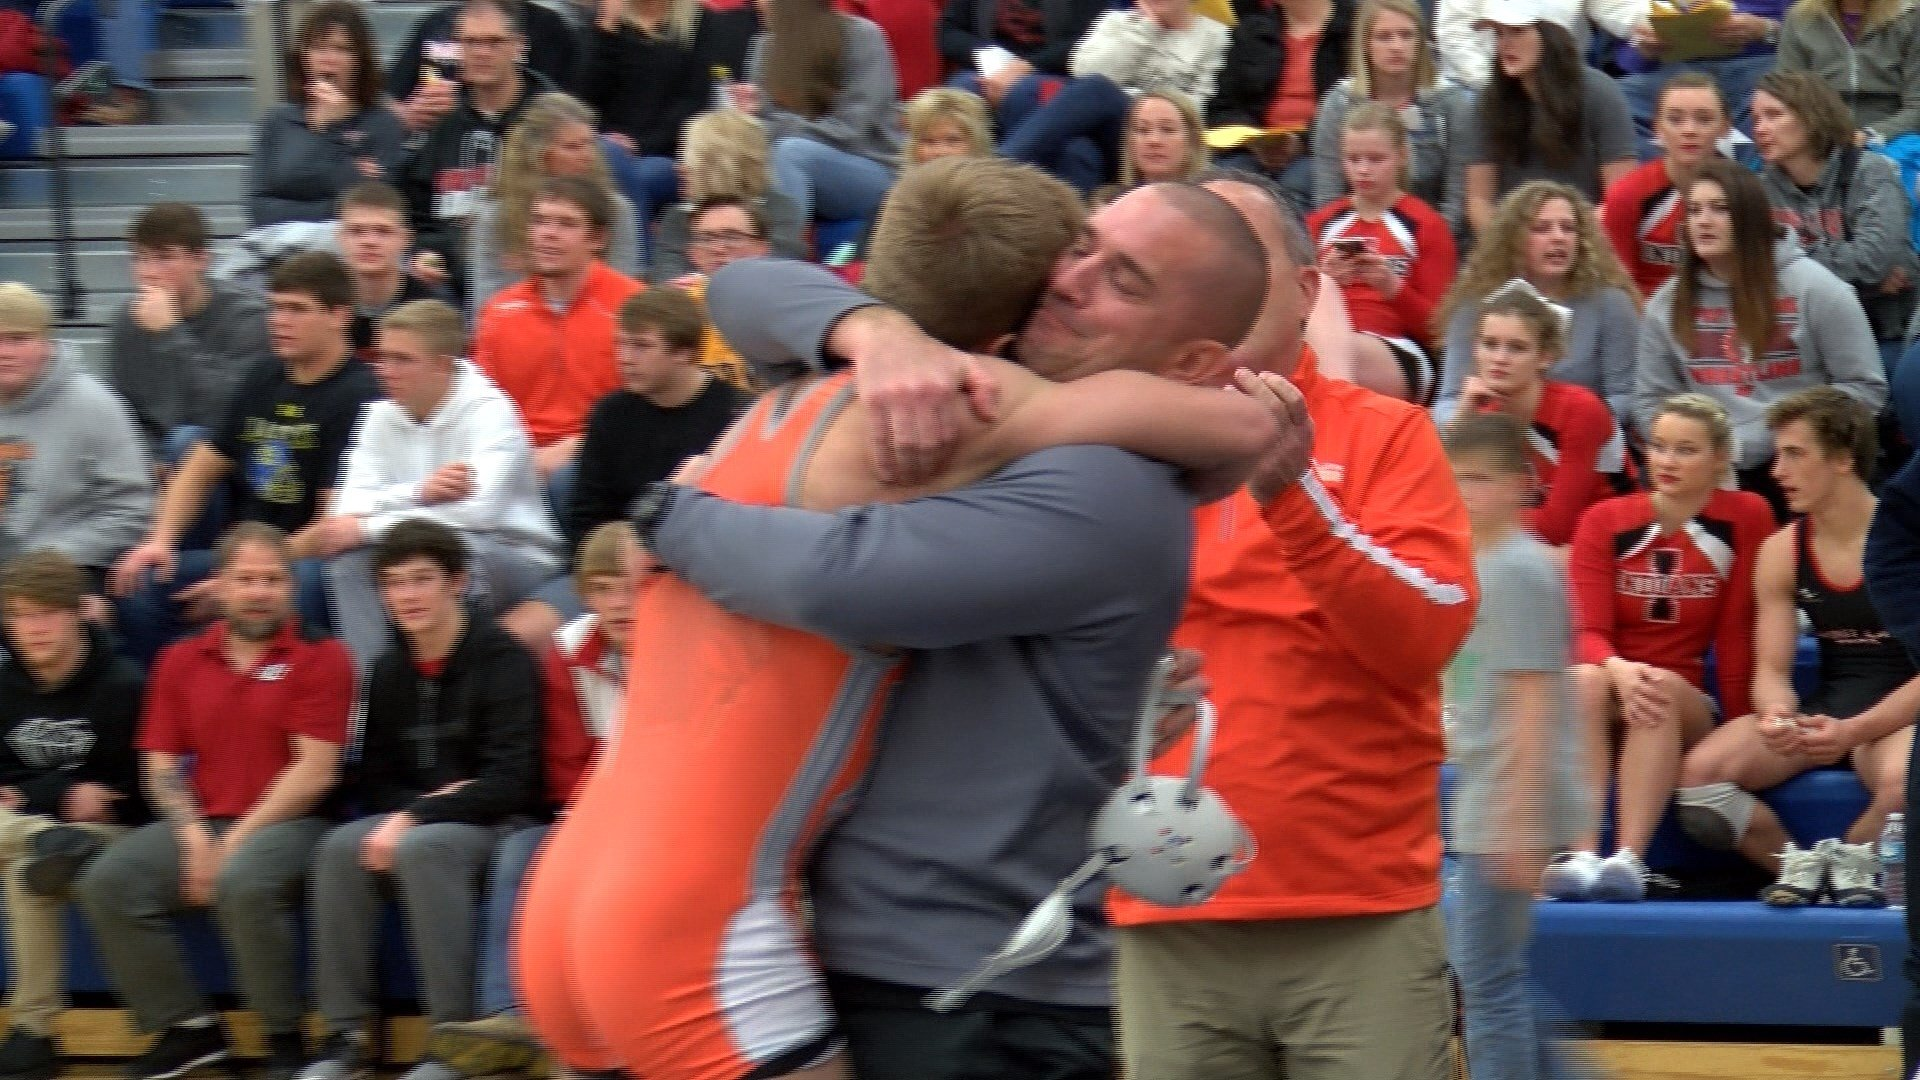 Sergeant Bluff-Luton is sending six wrestlers to the individual state tournament.